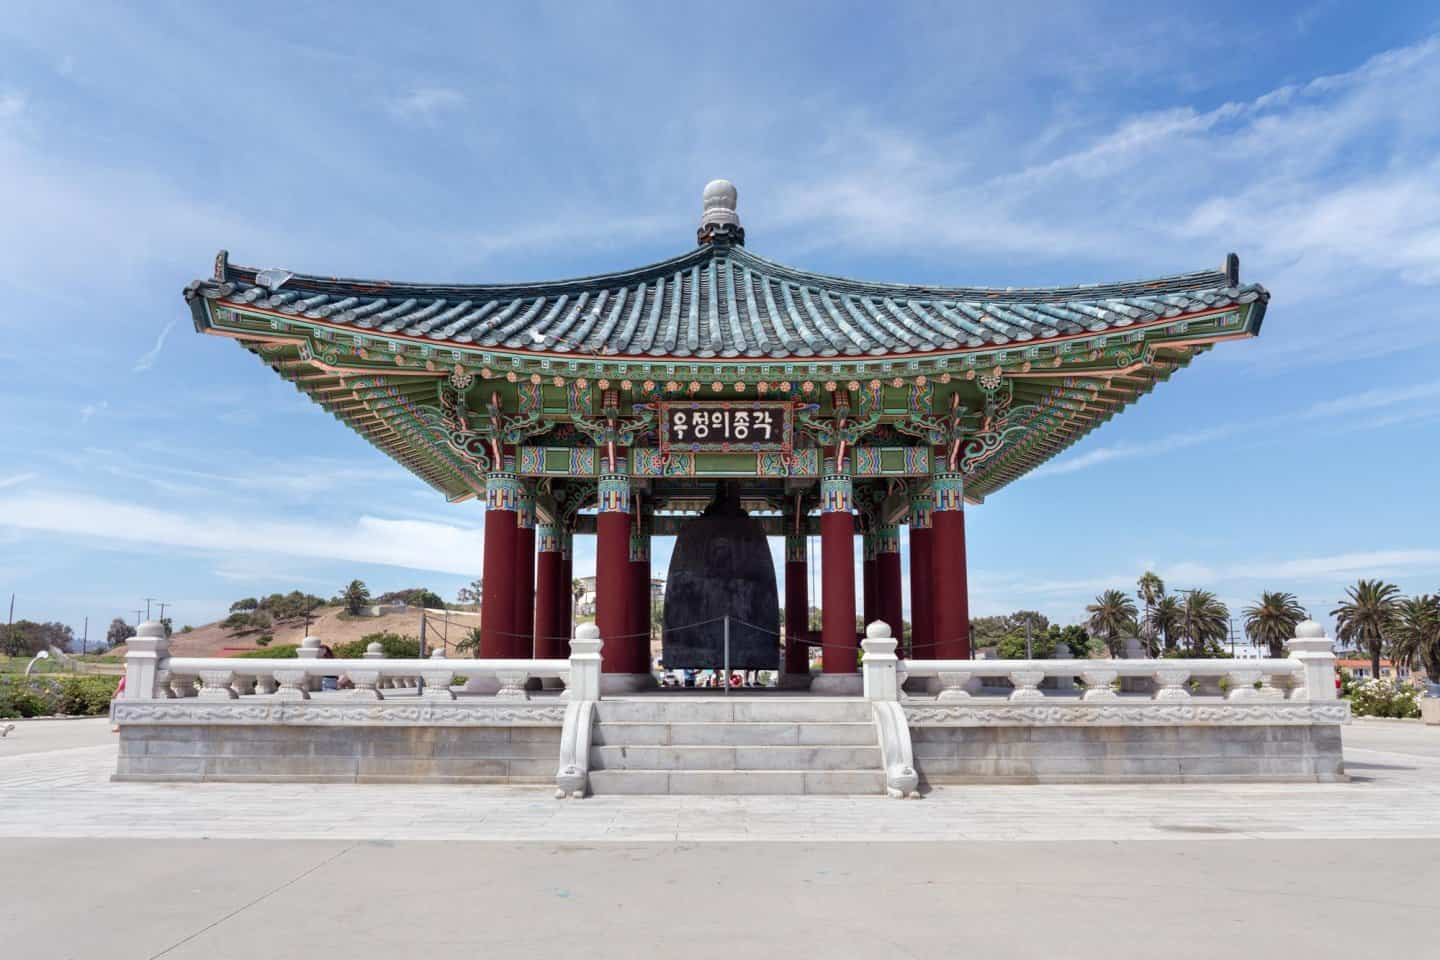 The Korean Friendship Bell in Los Angeles. A hidden gem to add to your LA bucket list